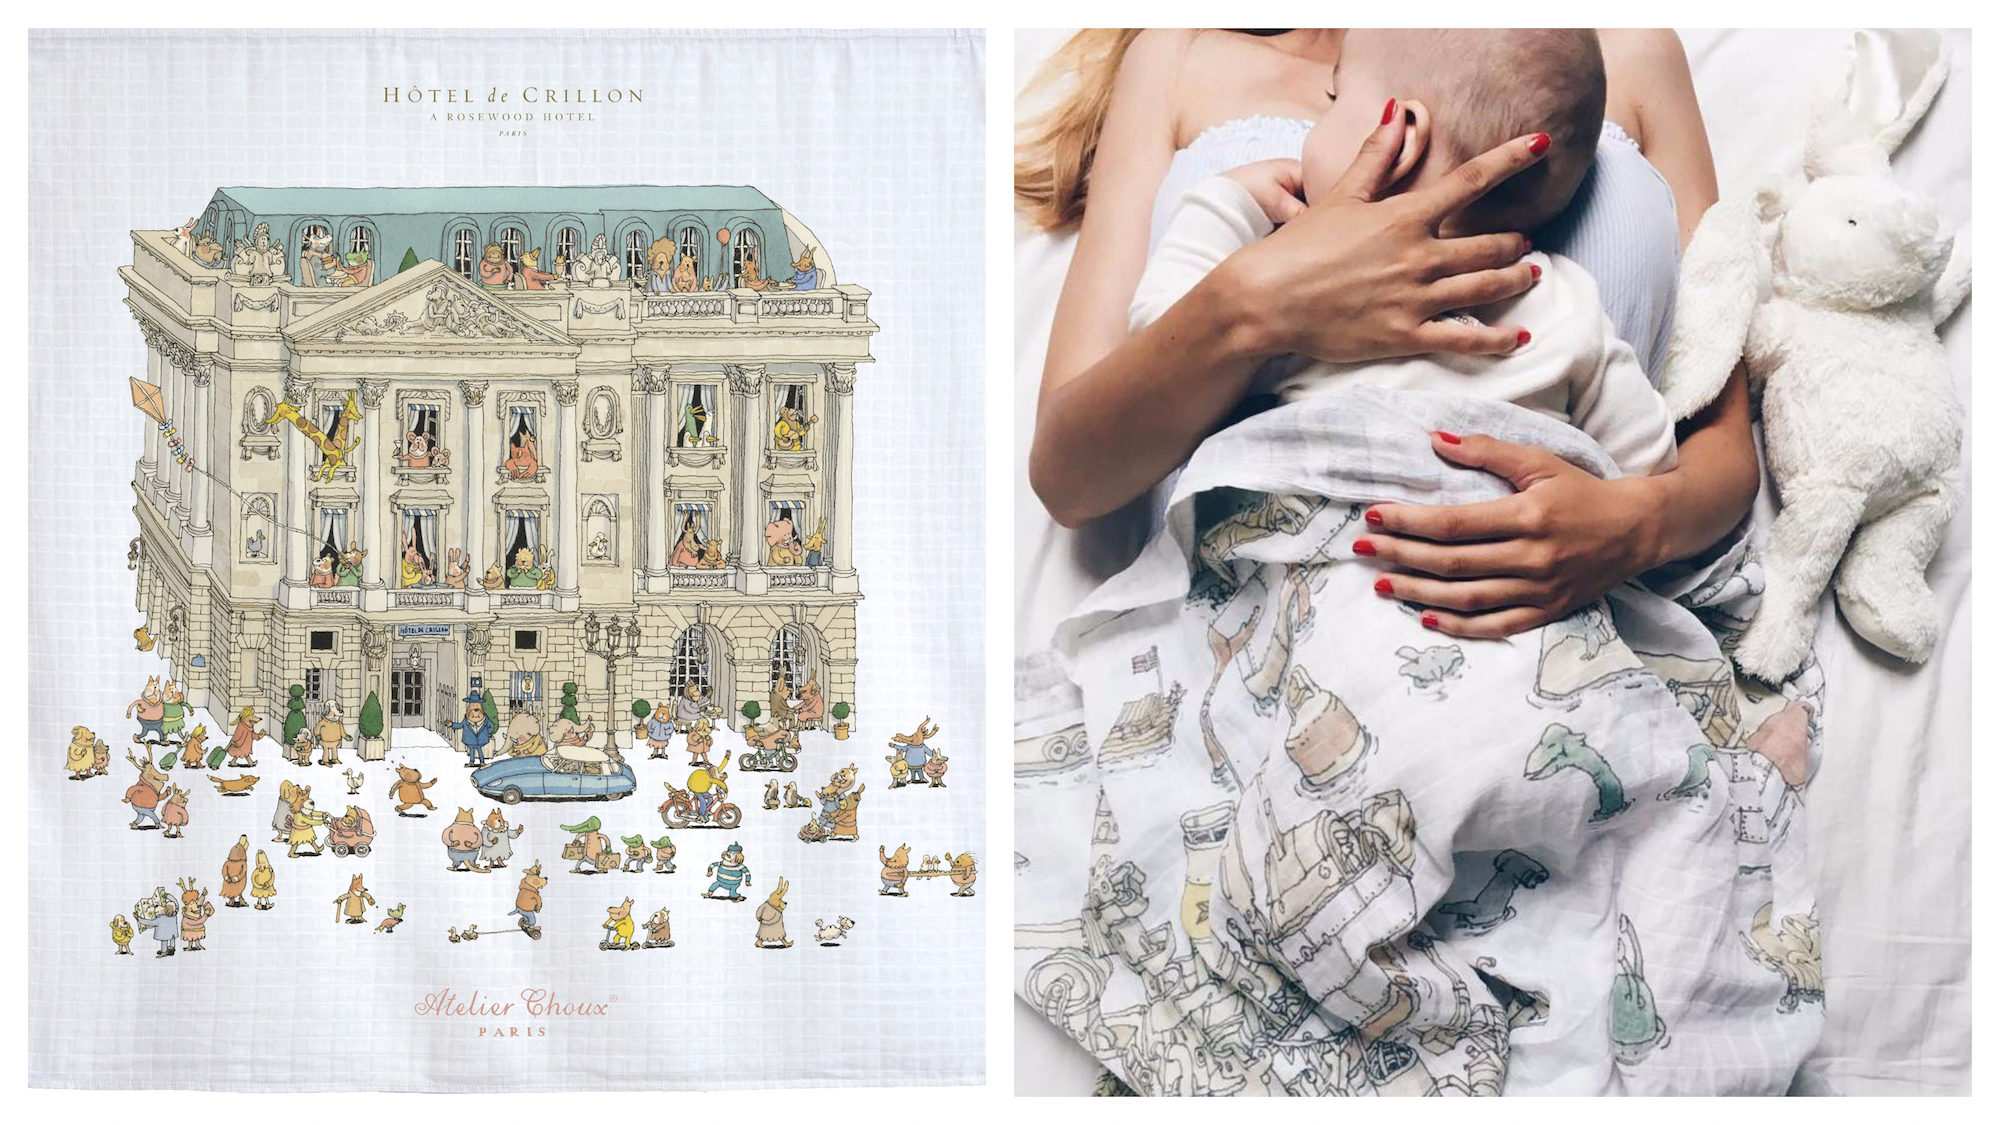 Pints by Atelier Choux Parisian baby boutique (right). A mother lying down with her baby rapped up in an Atelier Choux blanket (right).